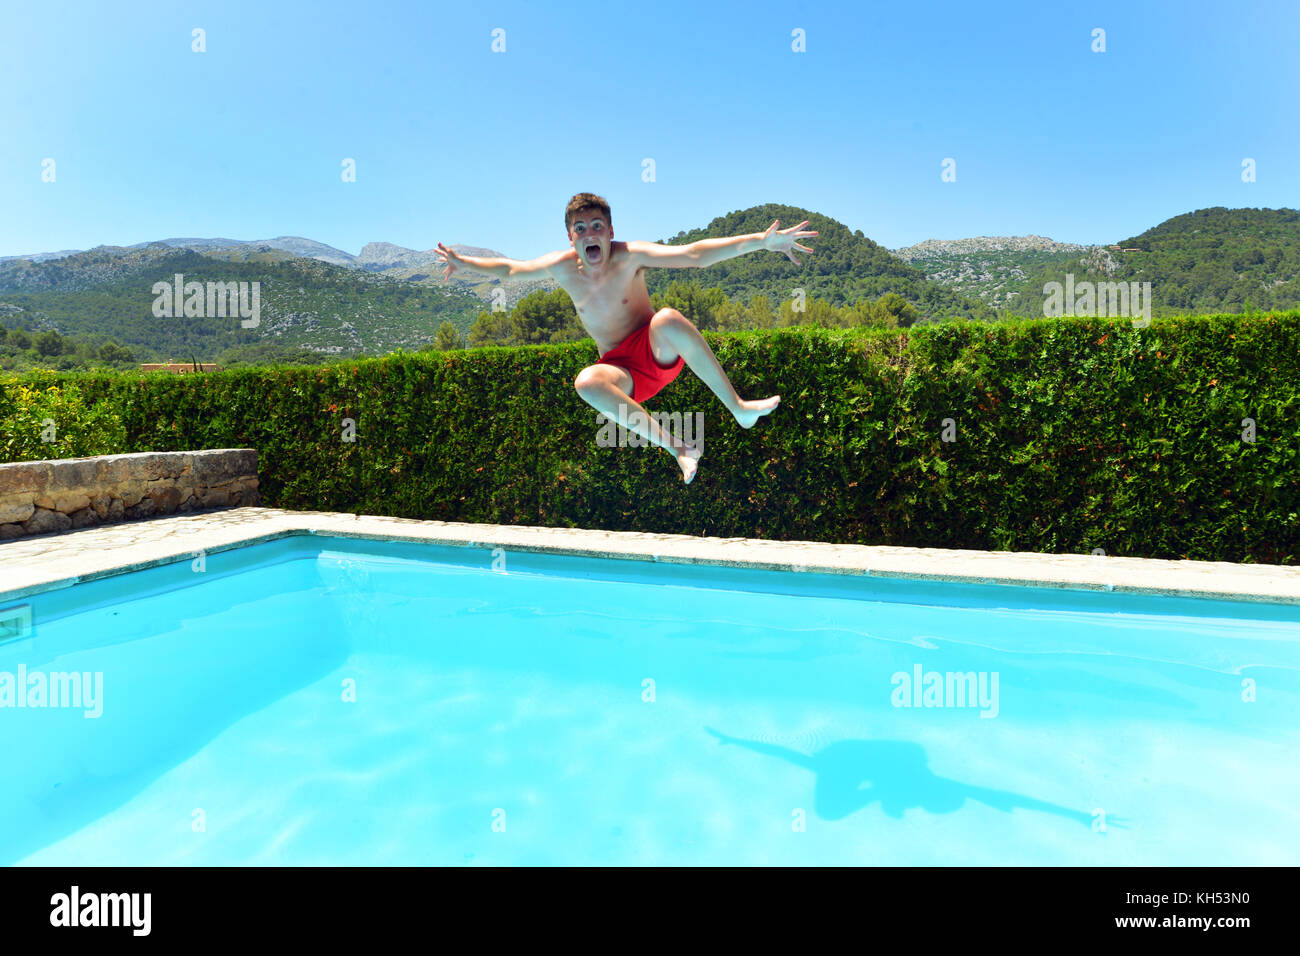 Teenage boy jumping into a private villa swimming pool - Stock Image